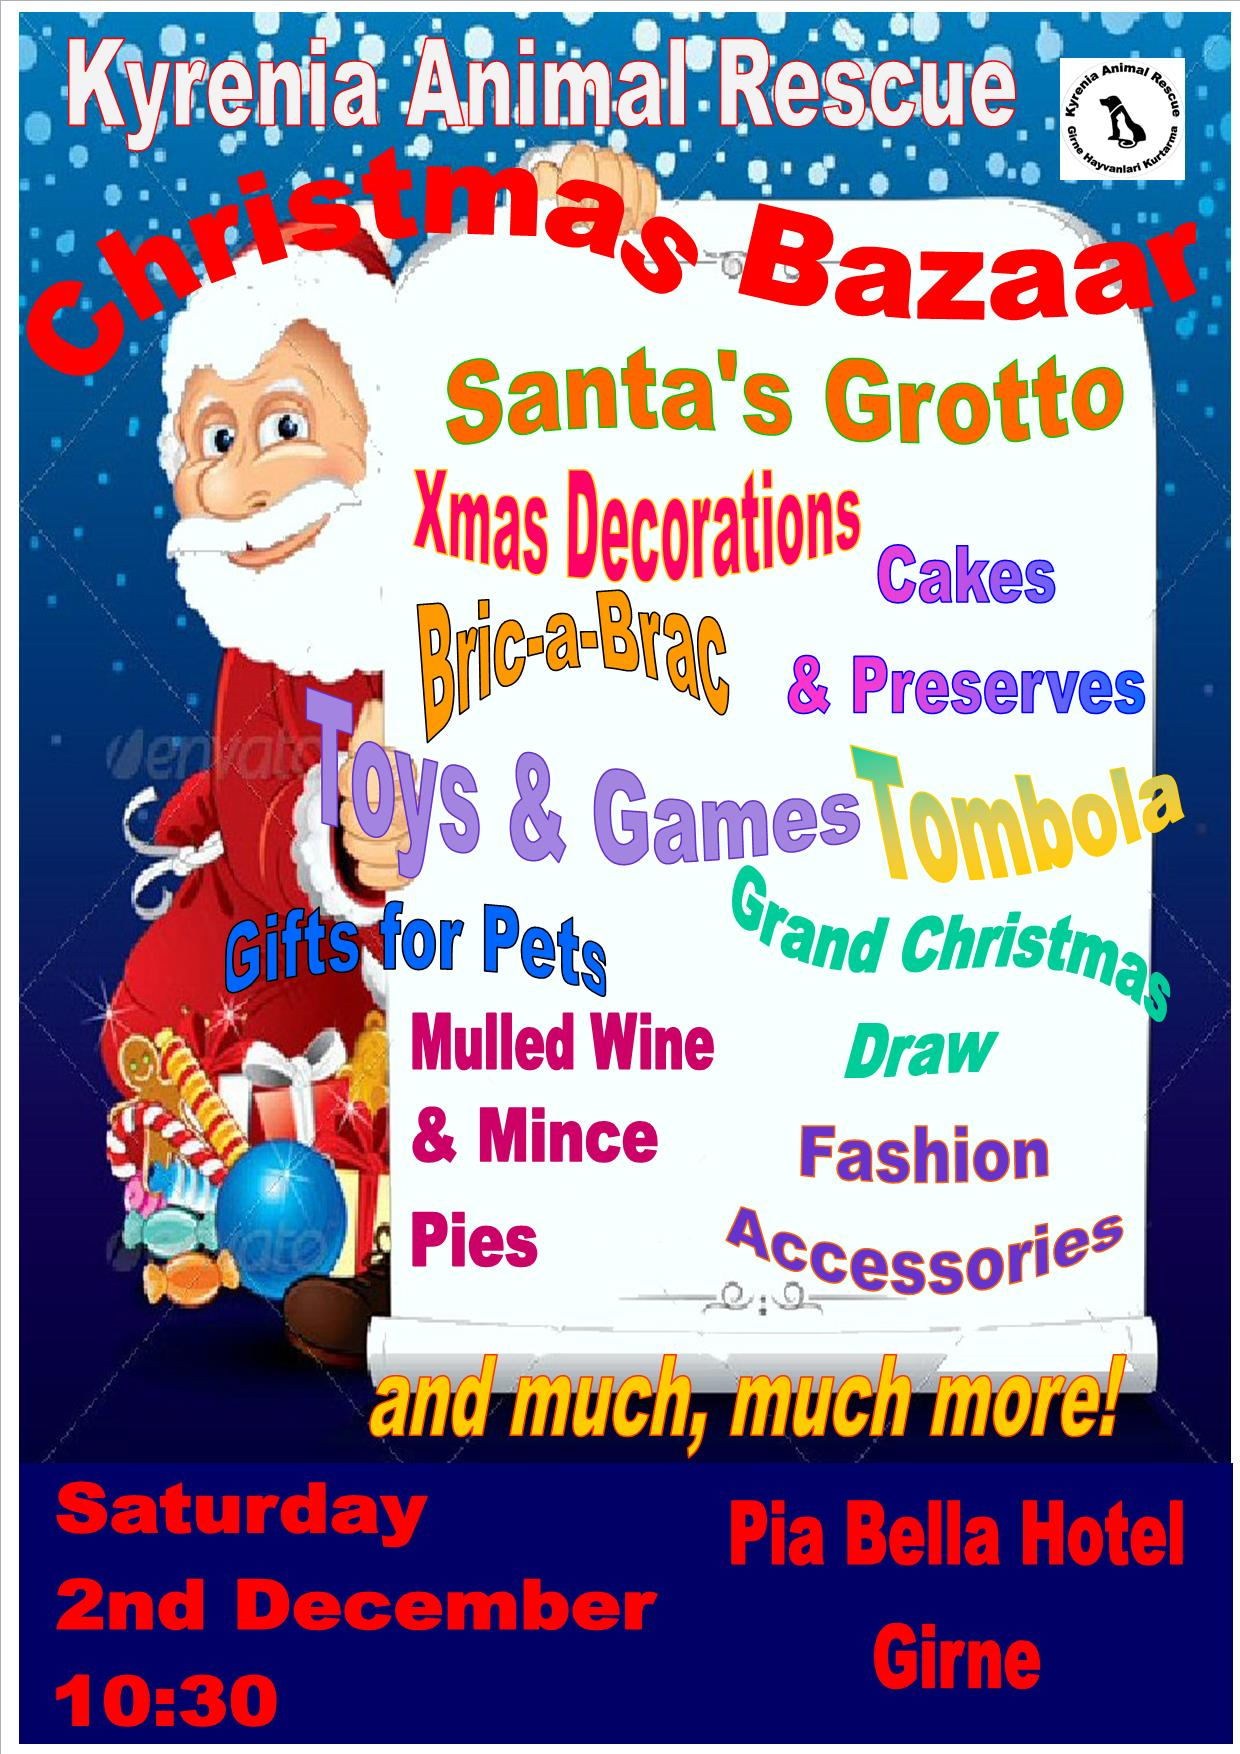 Kyrenia Animal Rescue's annual Christmas bazaar